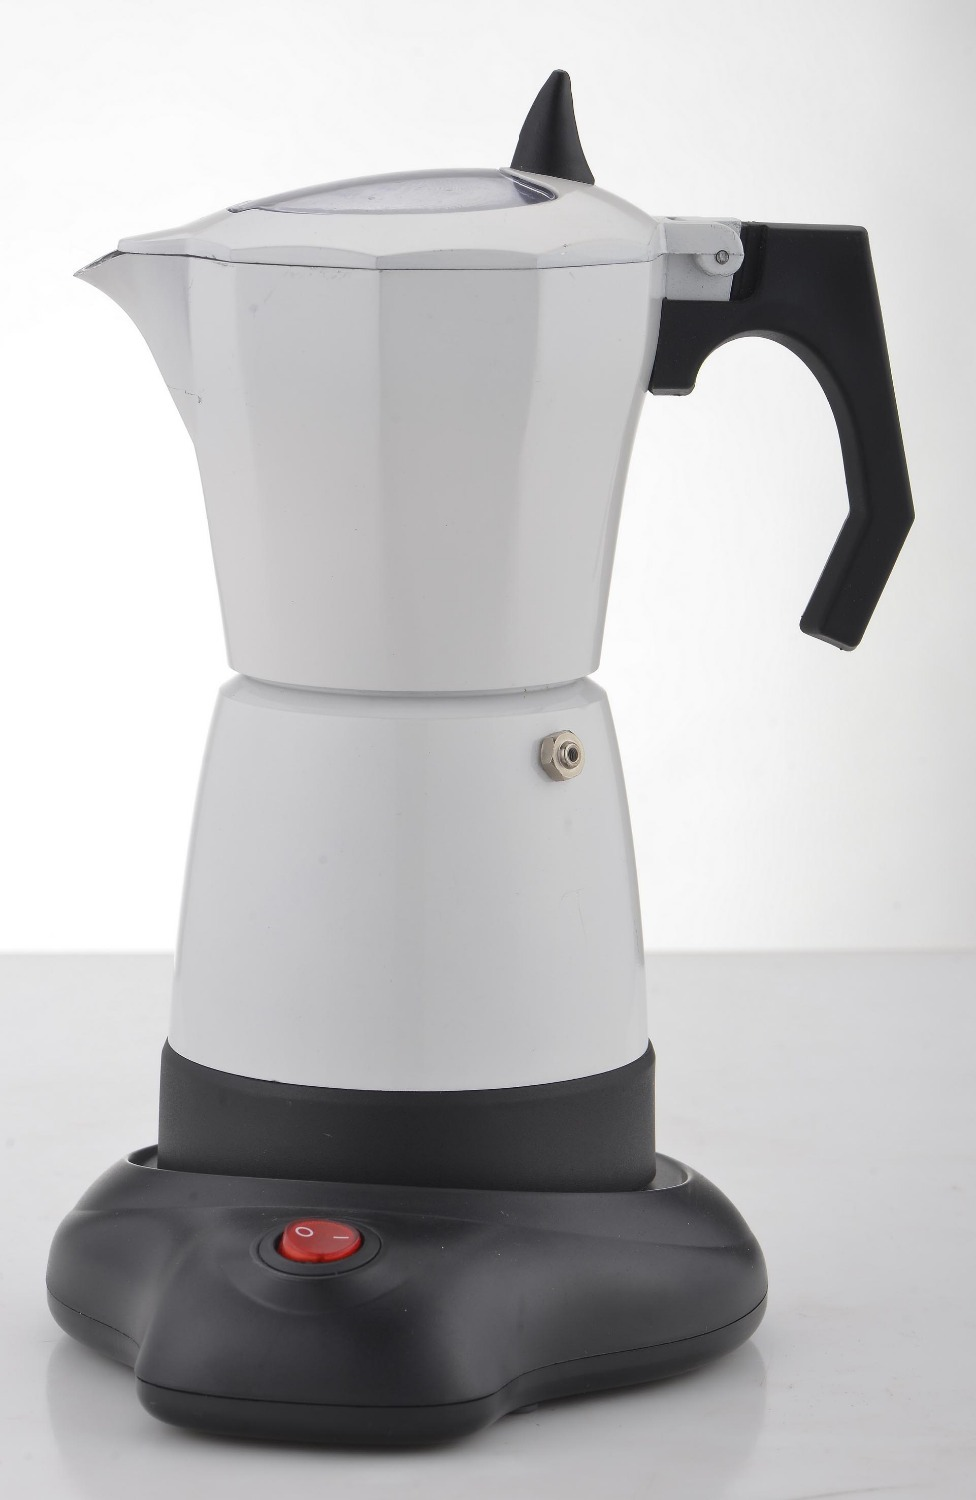 Coffee Maker For Large Groups : Electric espresso mocha coffee maker/mocha coffee pot with high quality,and perfect gift for ...